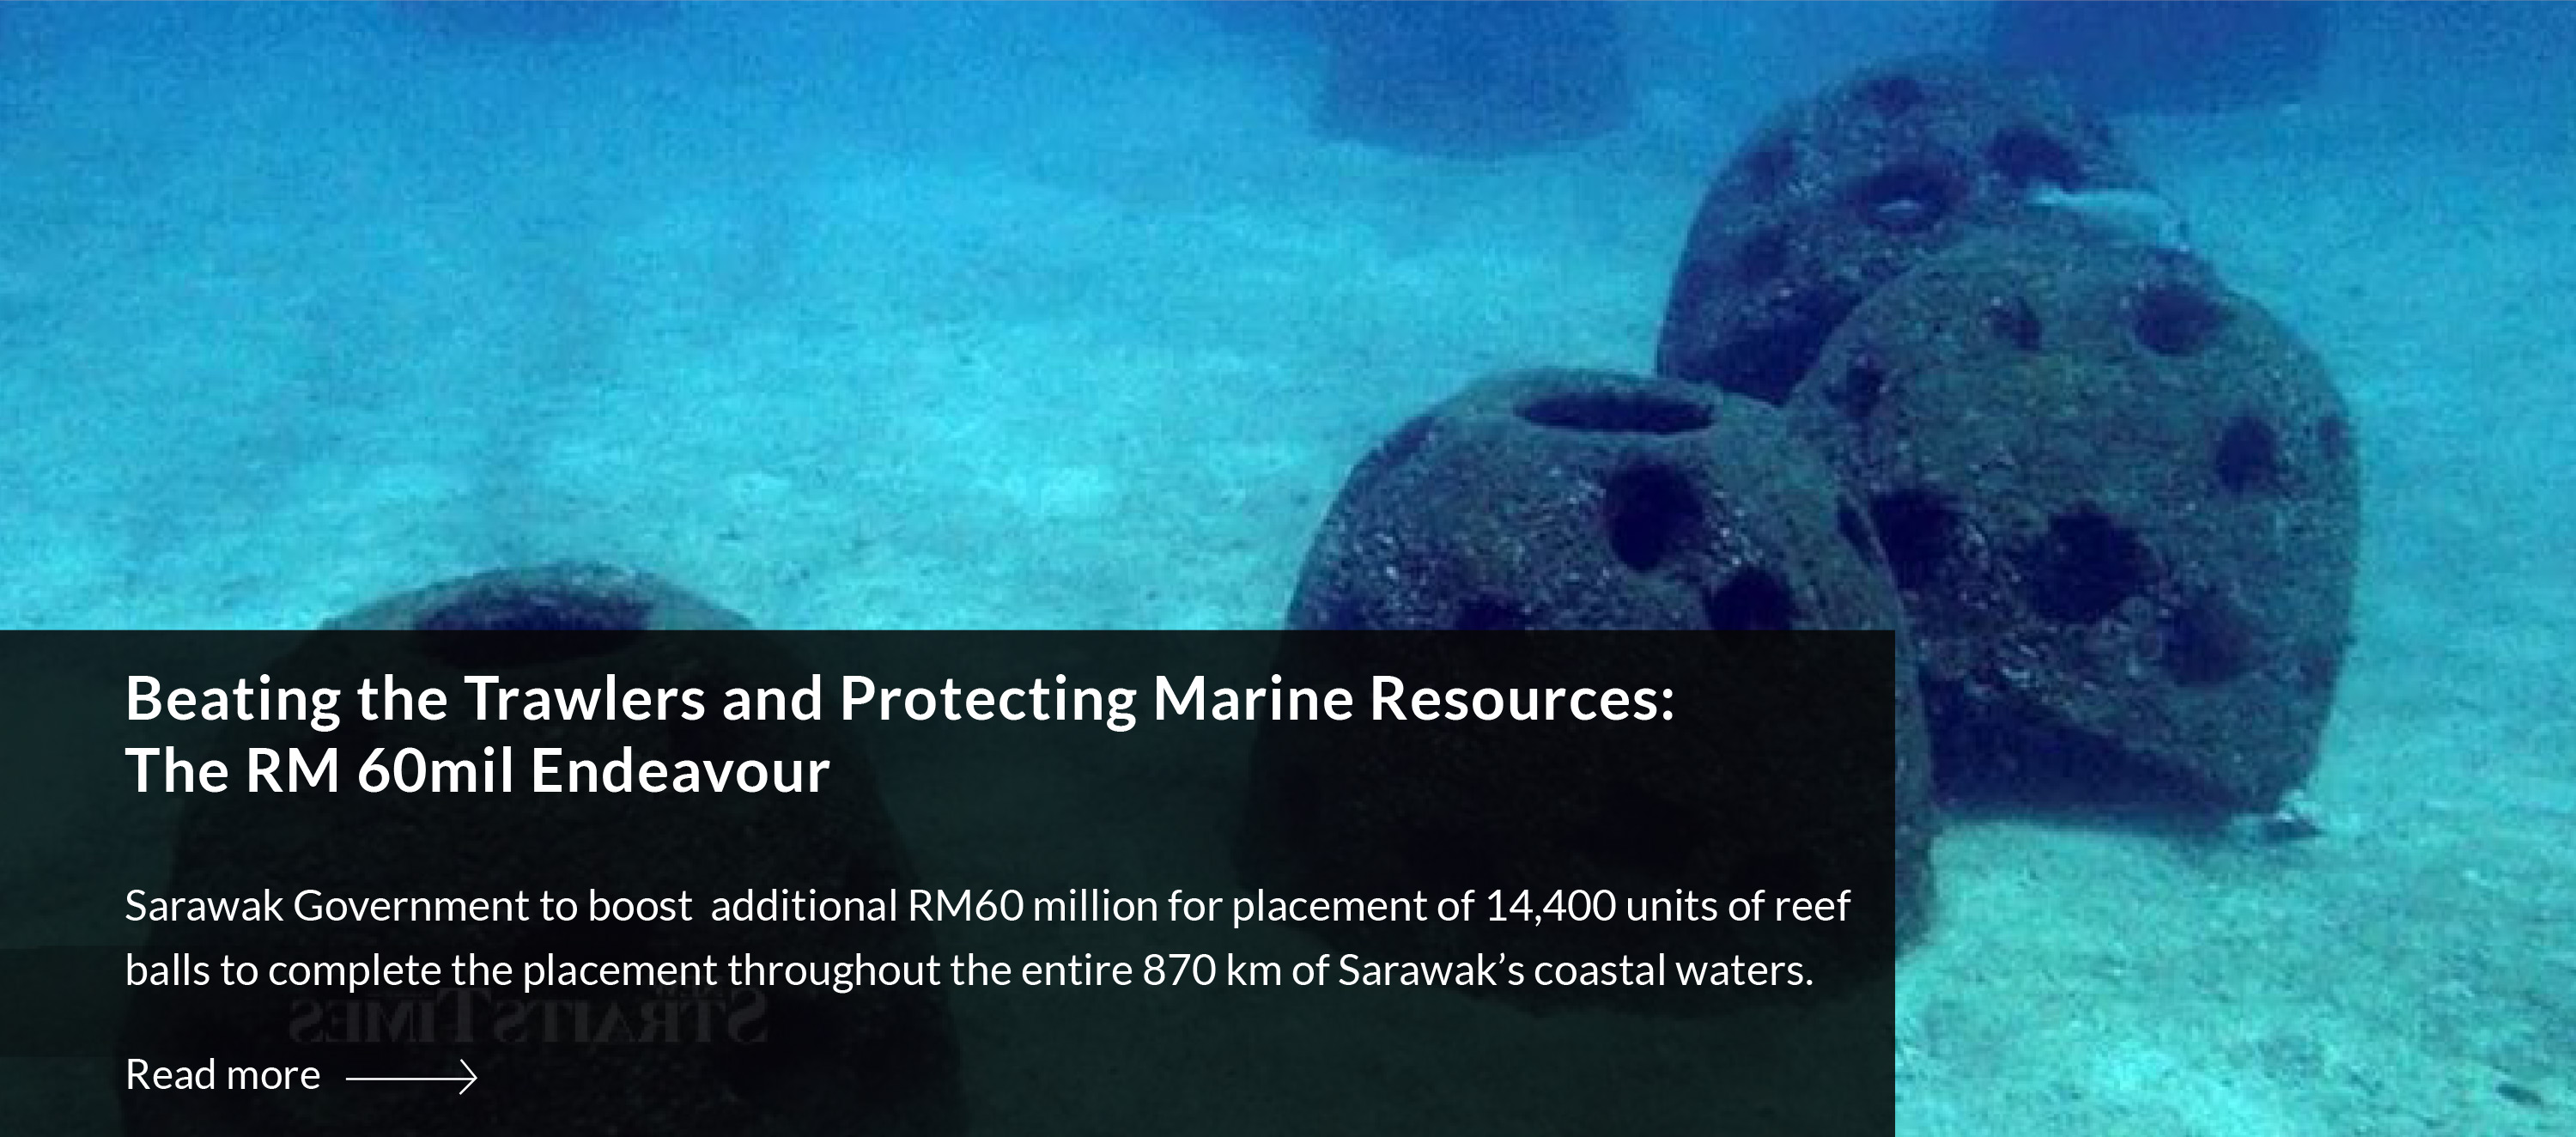 Beating the Trawlers and Protecting Marine Resources: the RM 60mil Endeavour